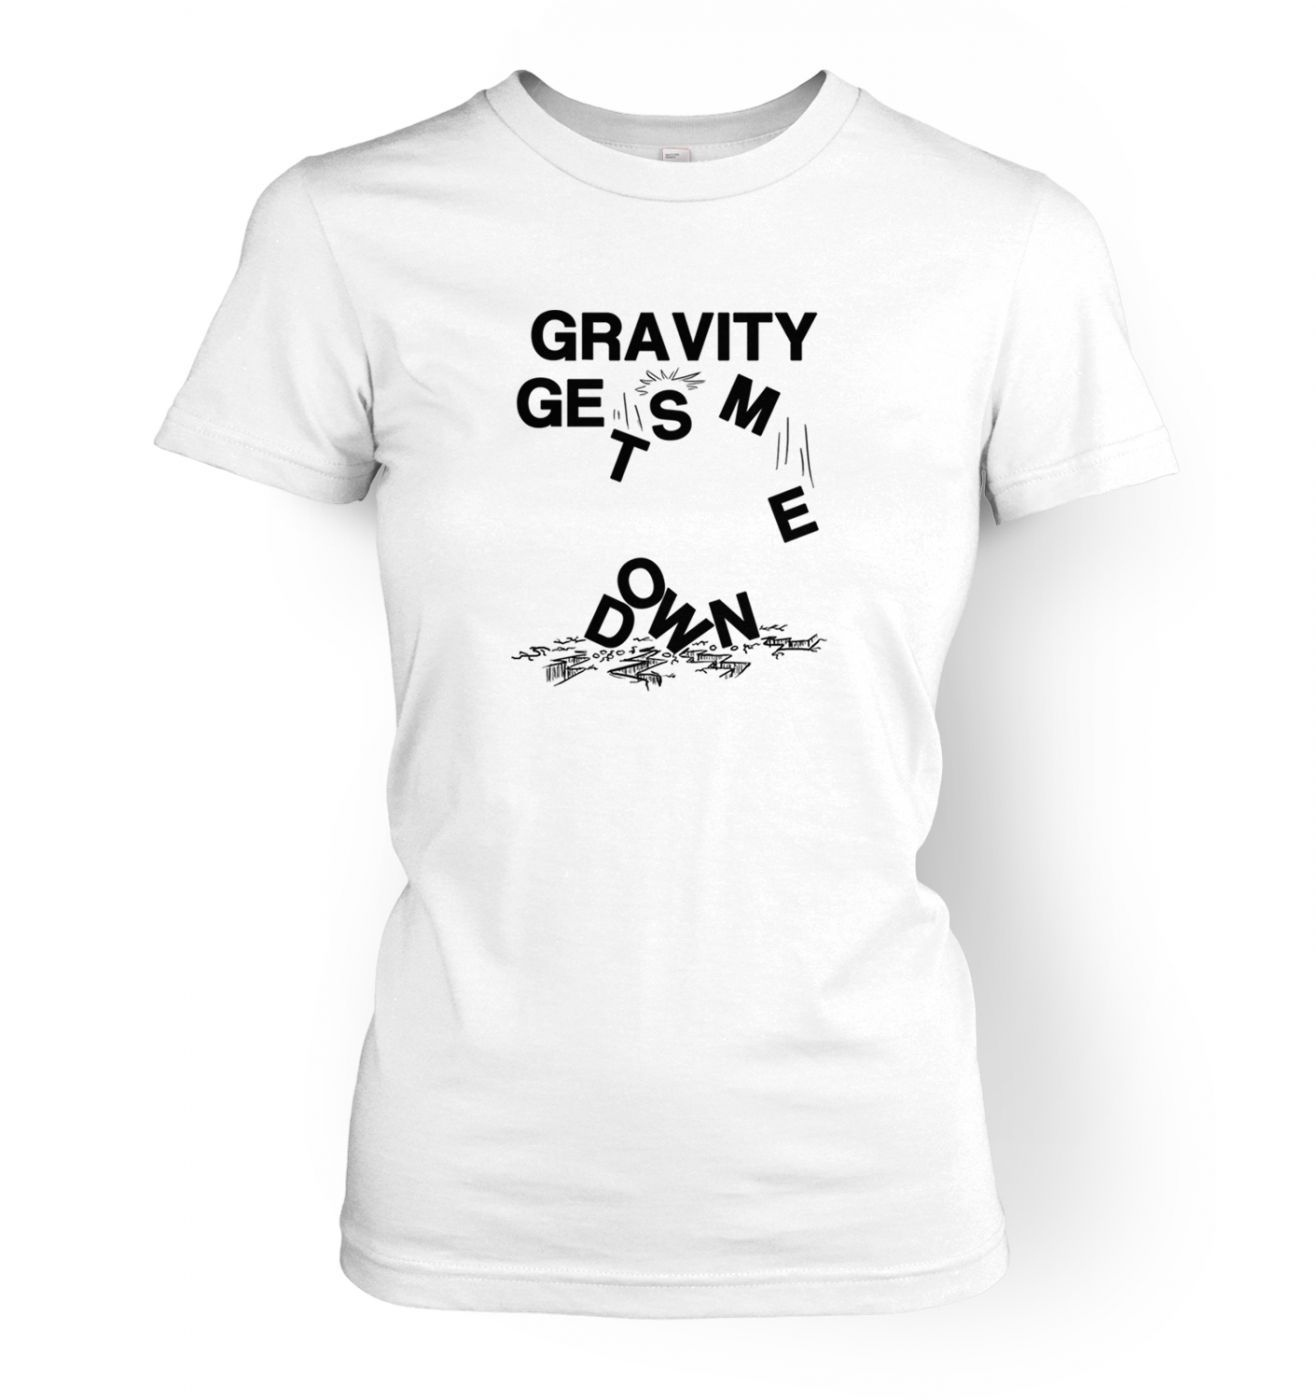 Gravity Gets Me Down women's fitted t-shirt